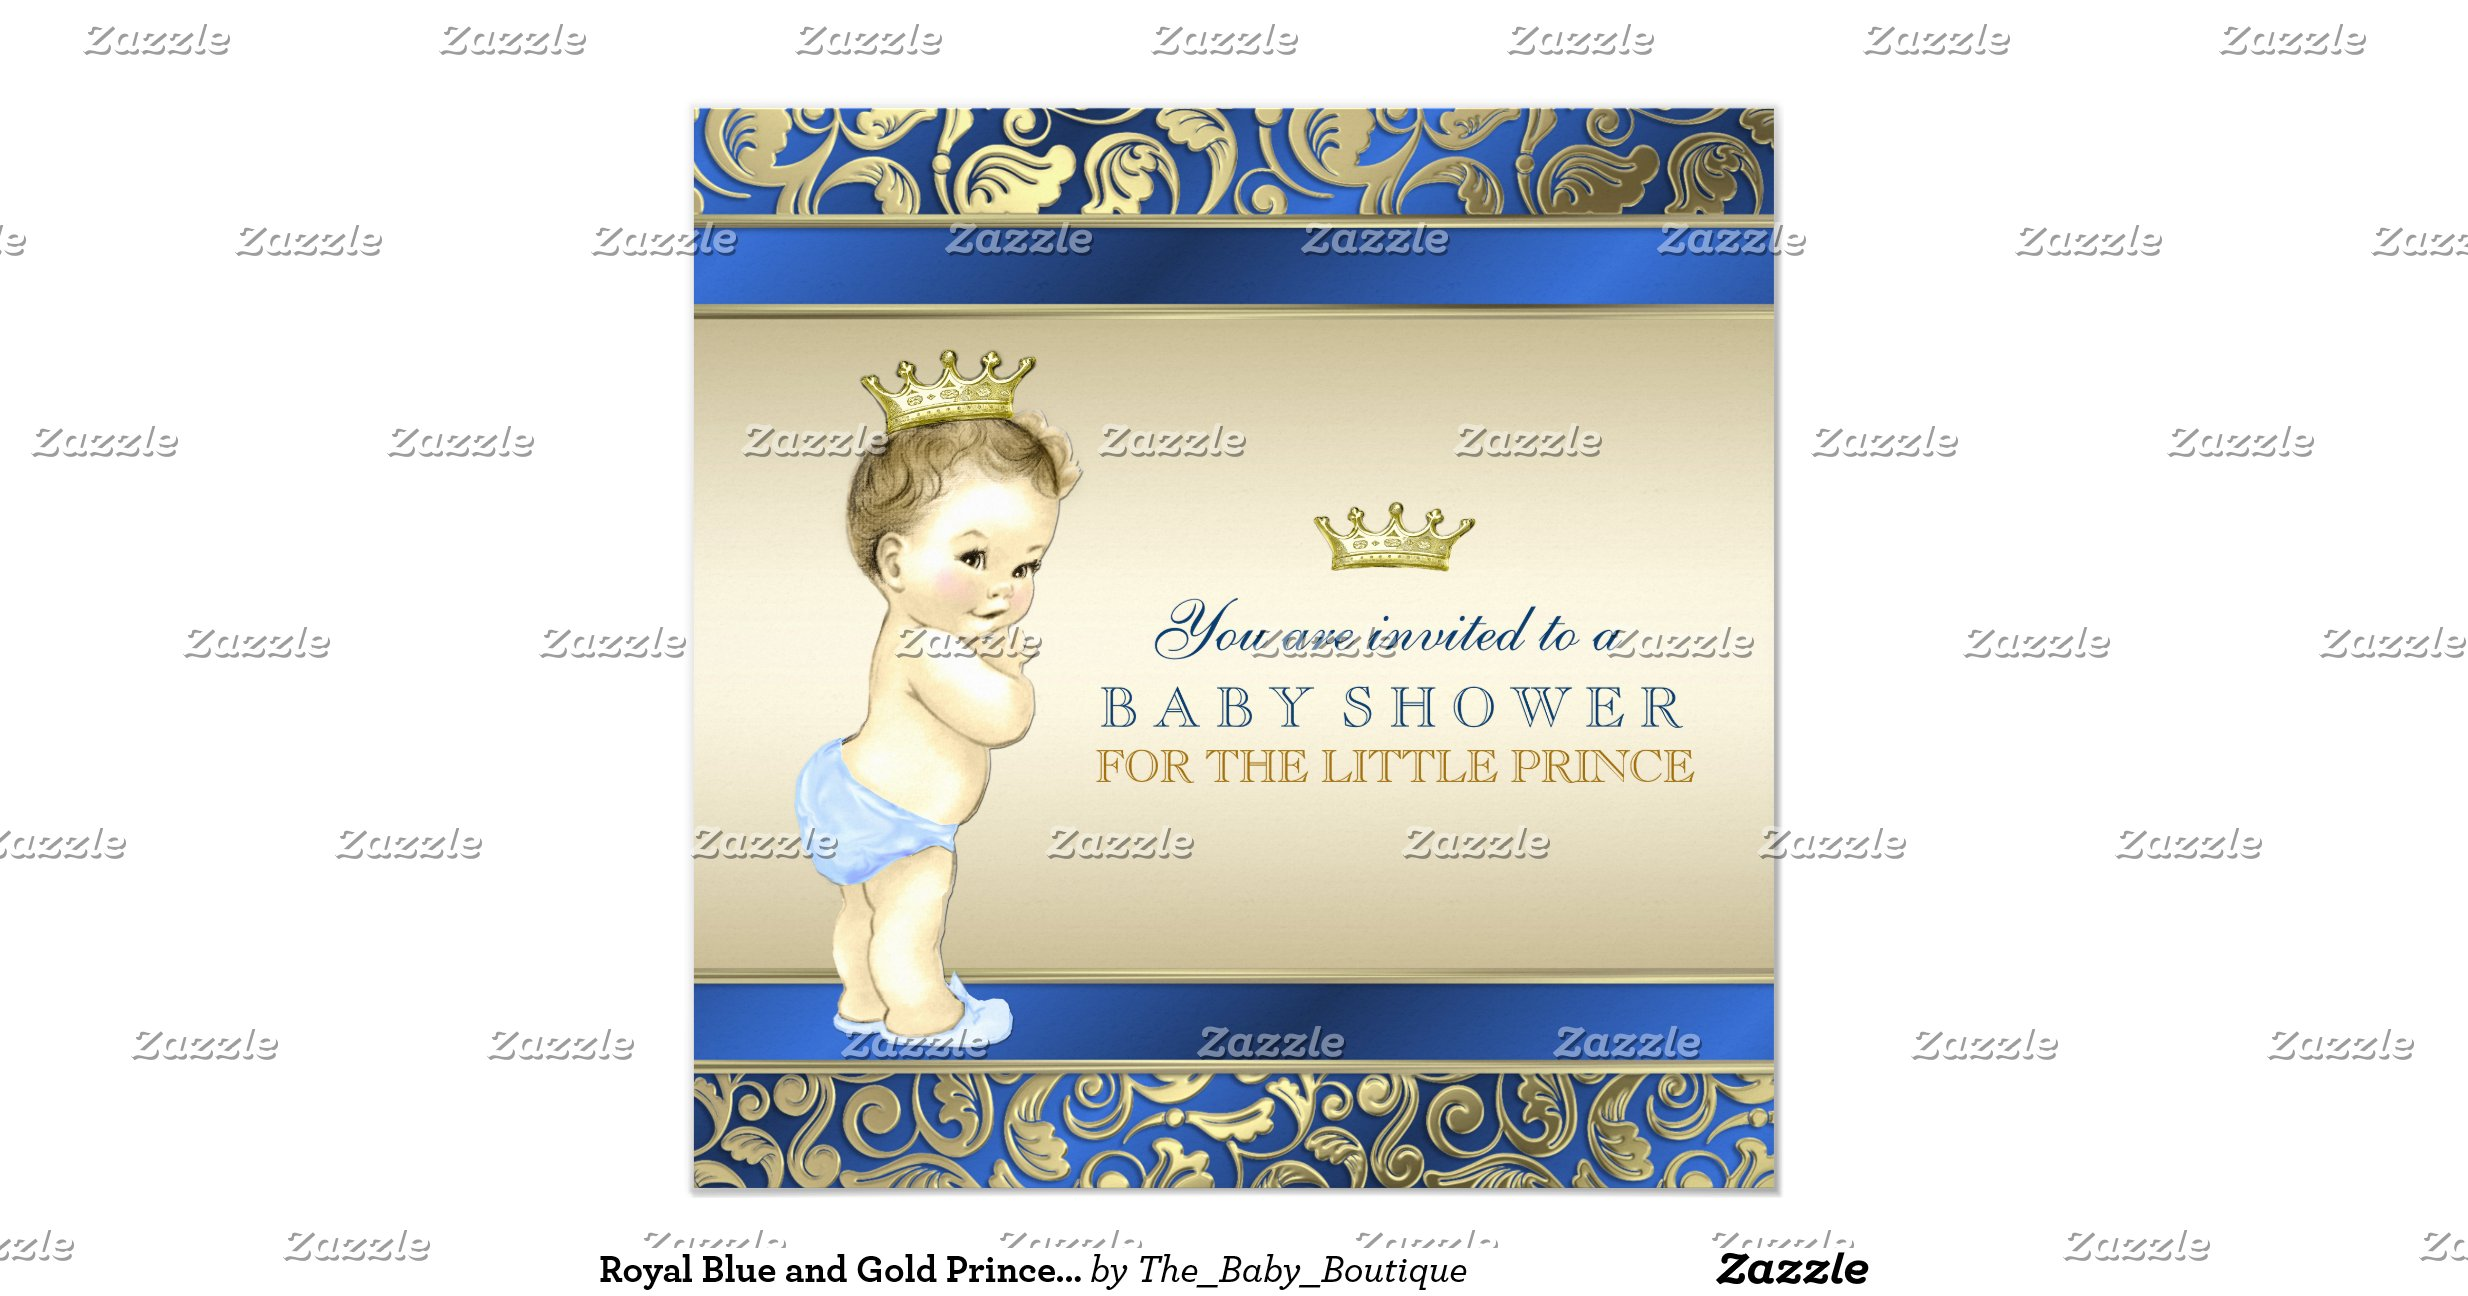 royal blue and gold prince baby shower invitation